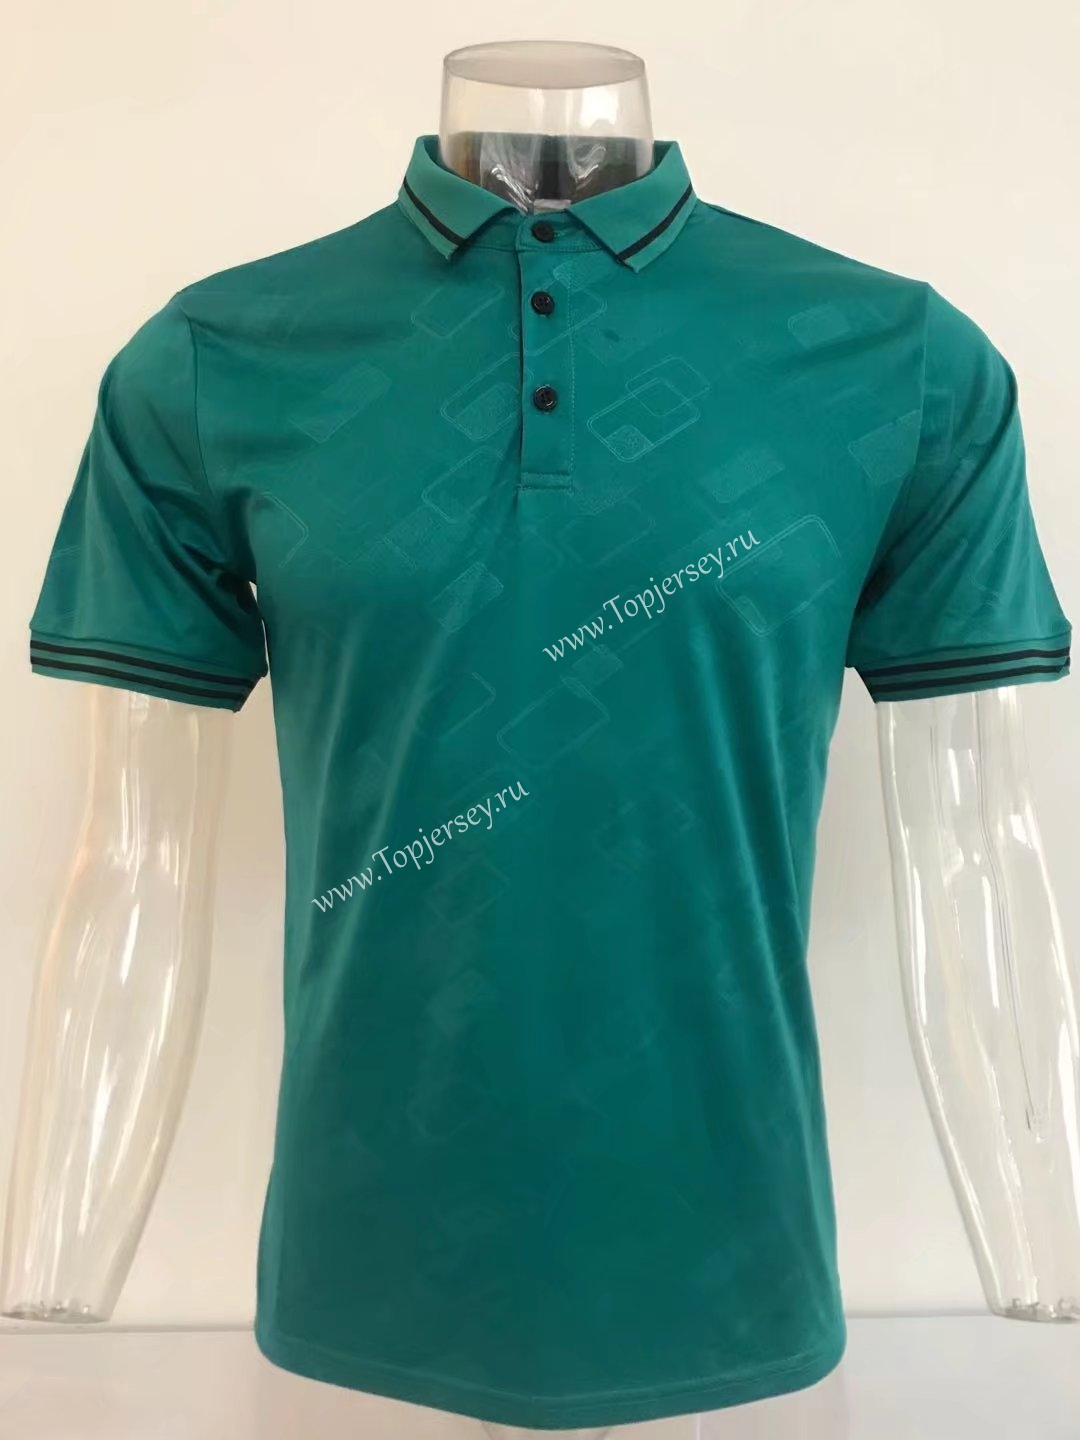 Without Logo Thailand Polo Shirt Dark Green Top 16 Without Logo